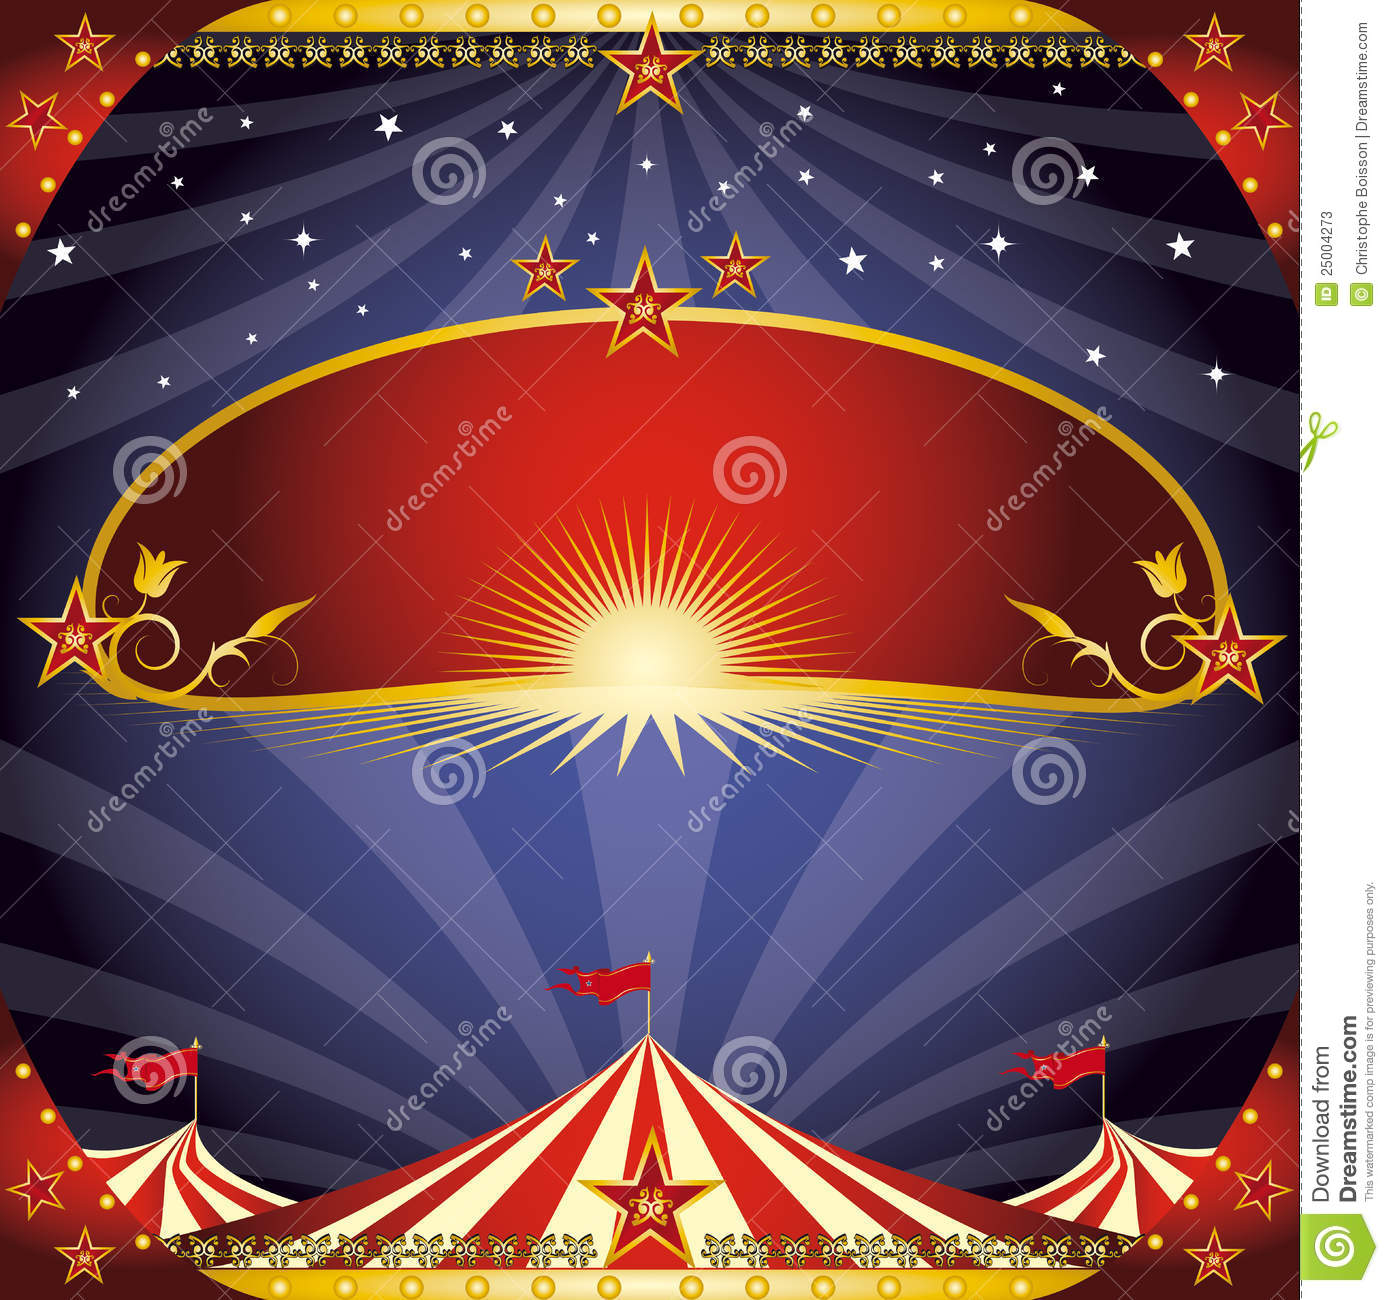 circus flyer background - photo #26